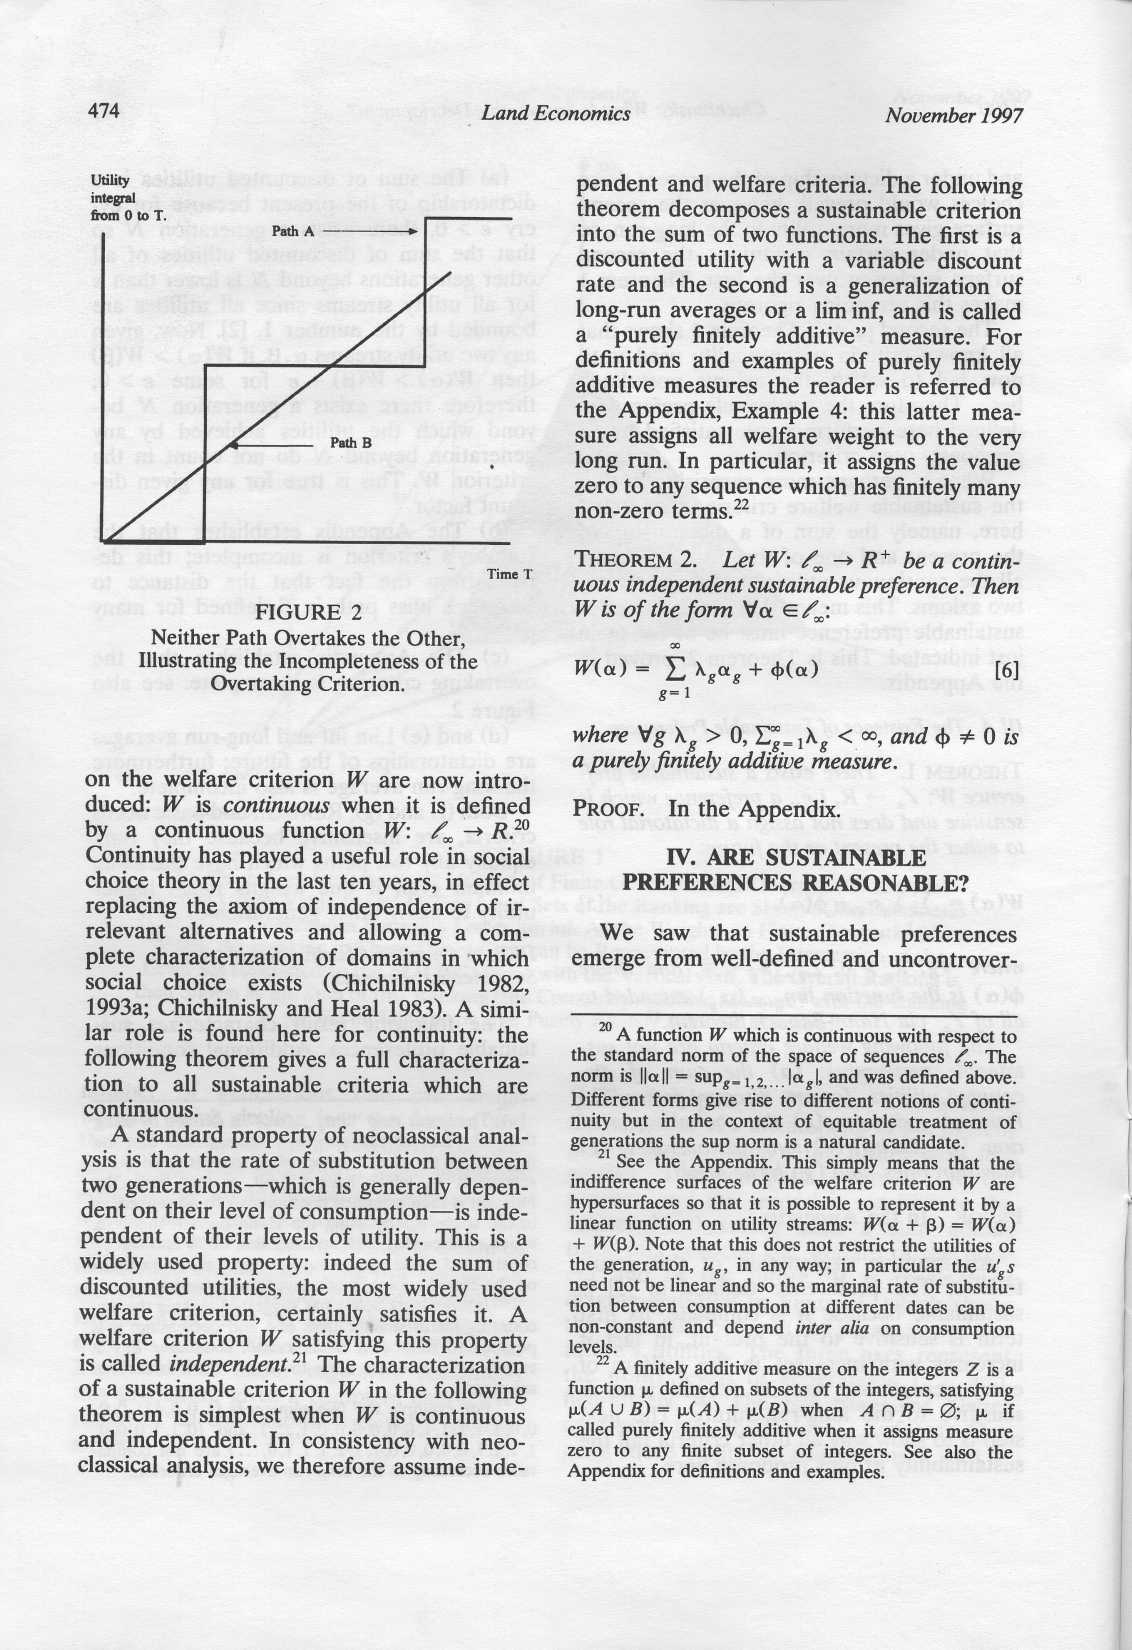 474 Land Economics November 1997 Utility integral from 0 to T. Path A - Path B pendent and welfare criteria. The following theorem decomposes a sustainable criterion into the sum of two functions.